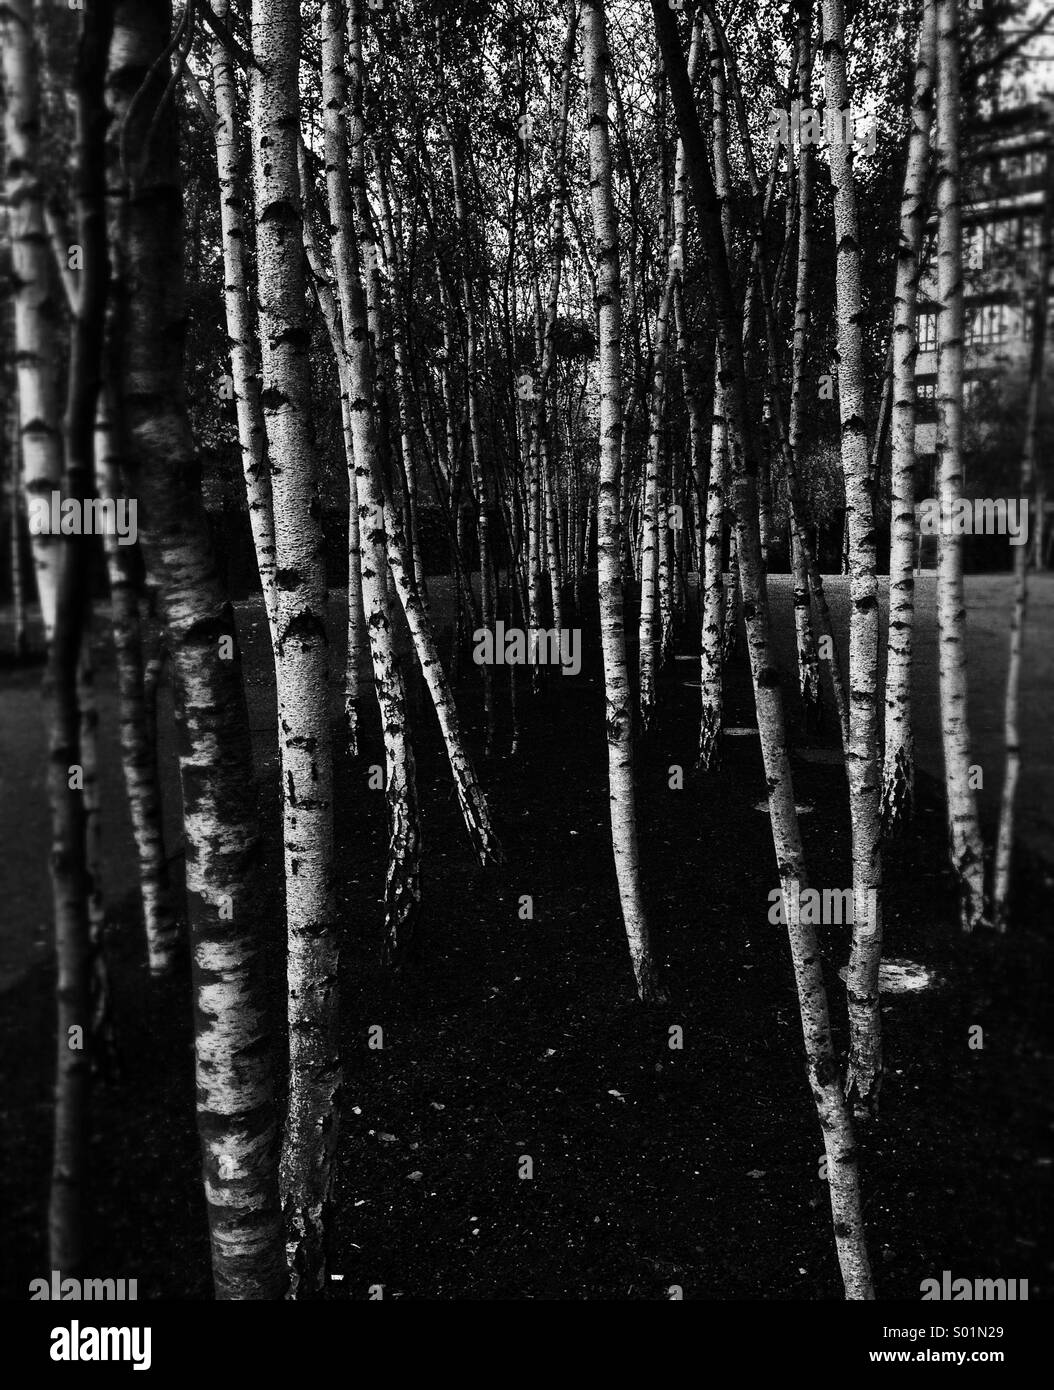 Sycamore Trees in Black and White - Stock Image